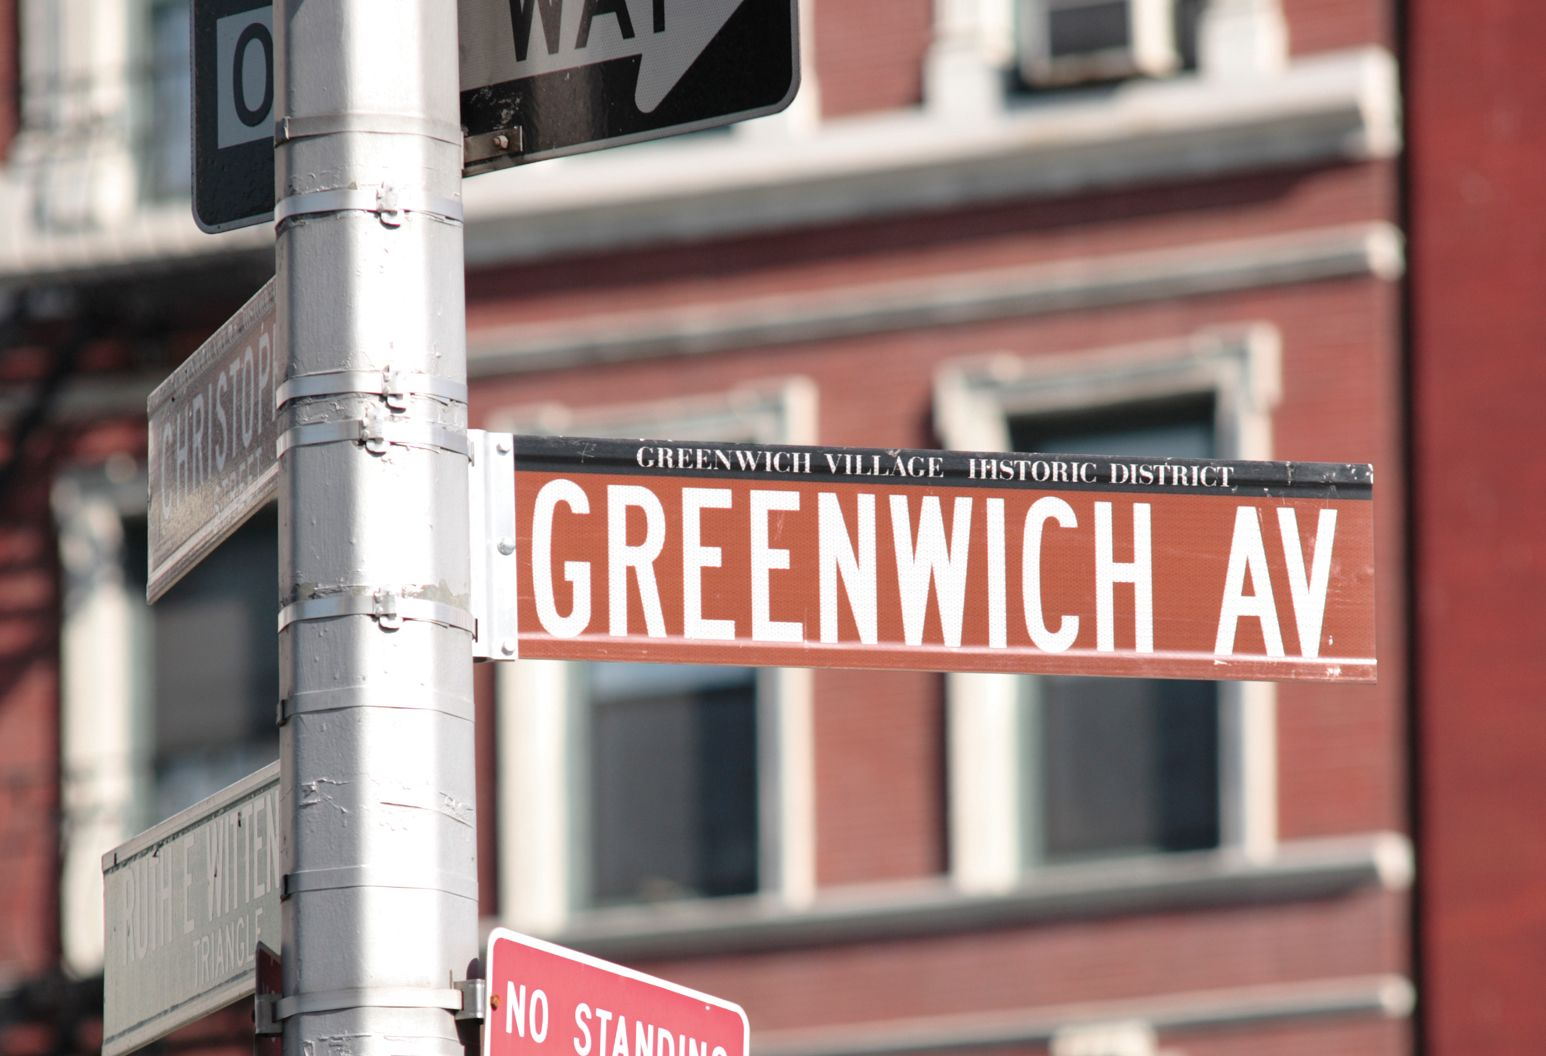 Auburn colored street sign of Greenwich Avenue, within the Greenwich Village Historic District